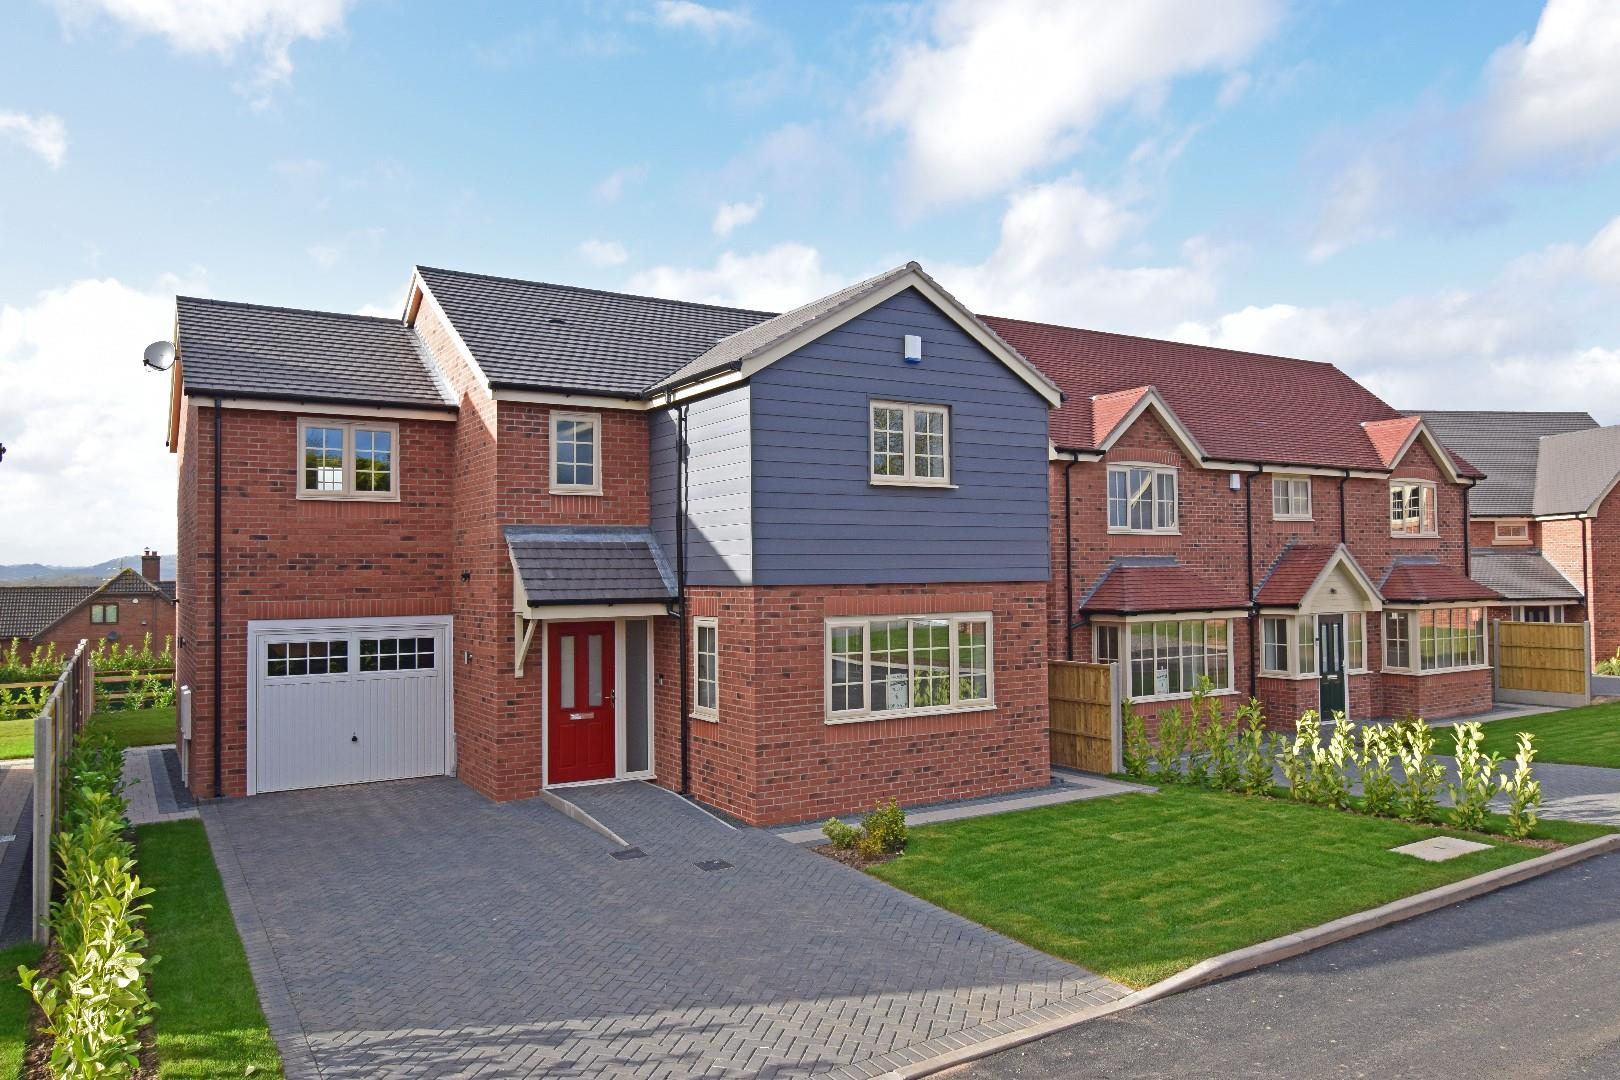 (Plot 4) 3 Peachley Court Close, Peachley Lane, Lower Broadheath, Worcestershire, WR2 6SA